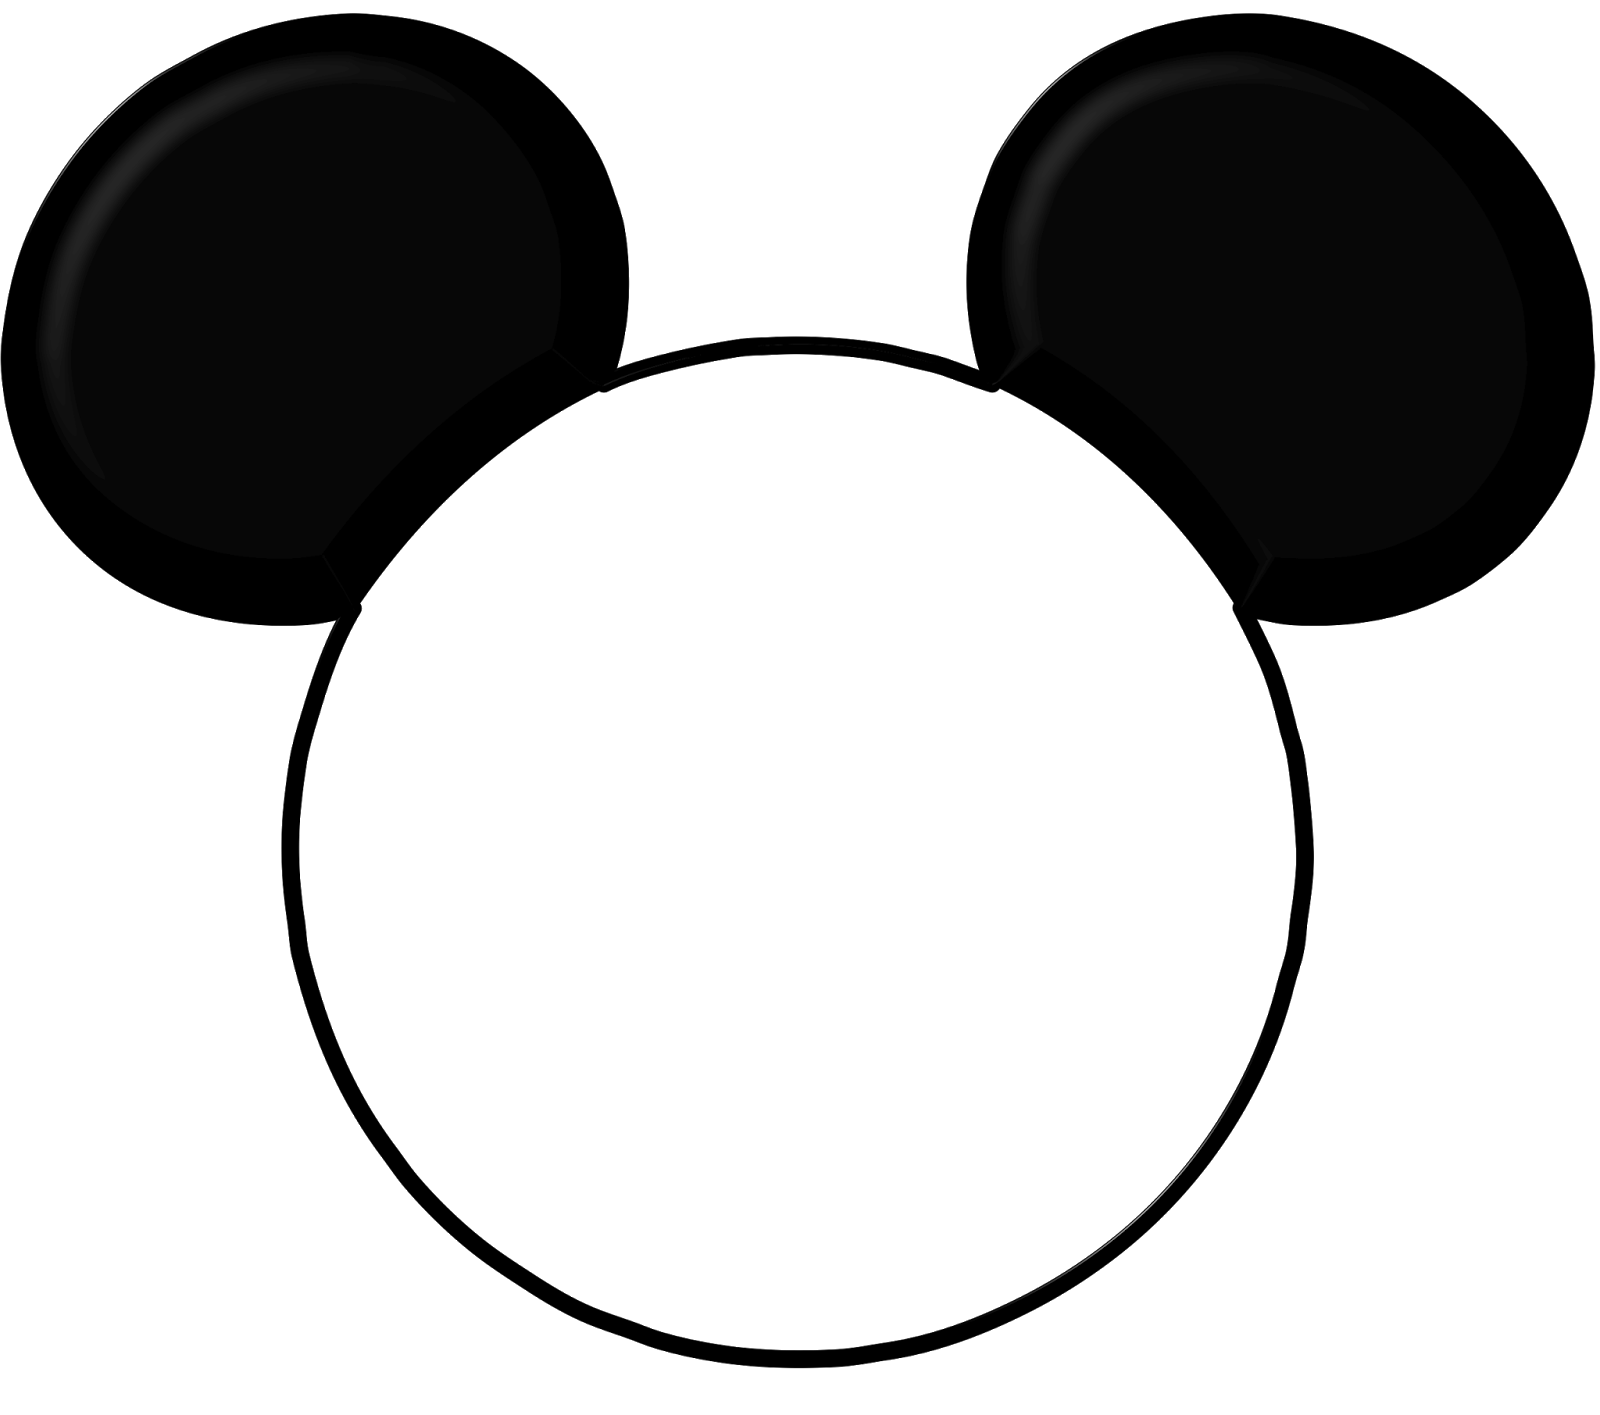 To open the Mickey Head select - Insert  then Picture  This will open    Mickey Mouse Ears Png